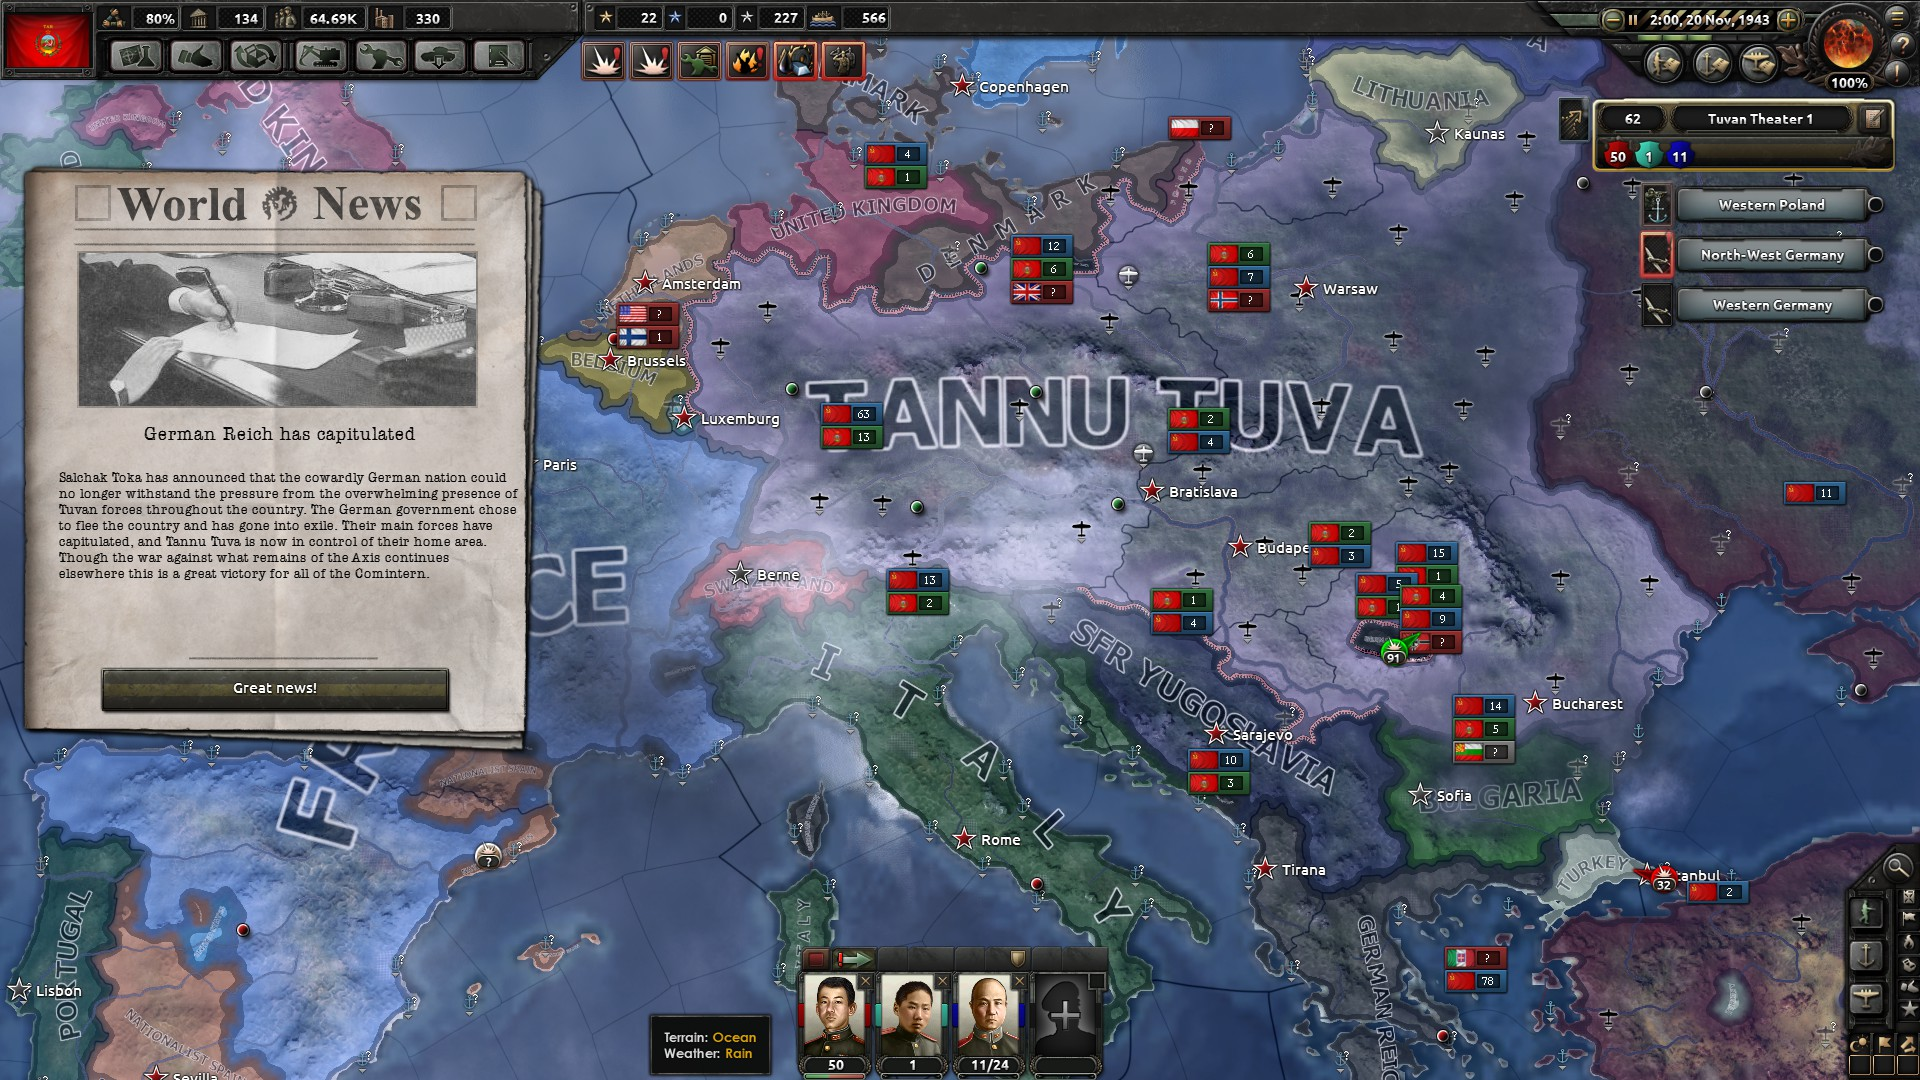 Say Tannu What Again Hearts Of Iron 4 Tannu Tuva 688302 Hd